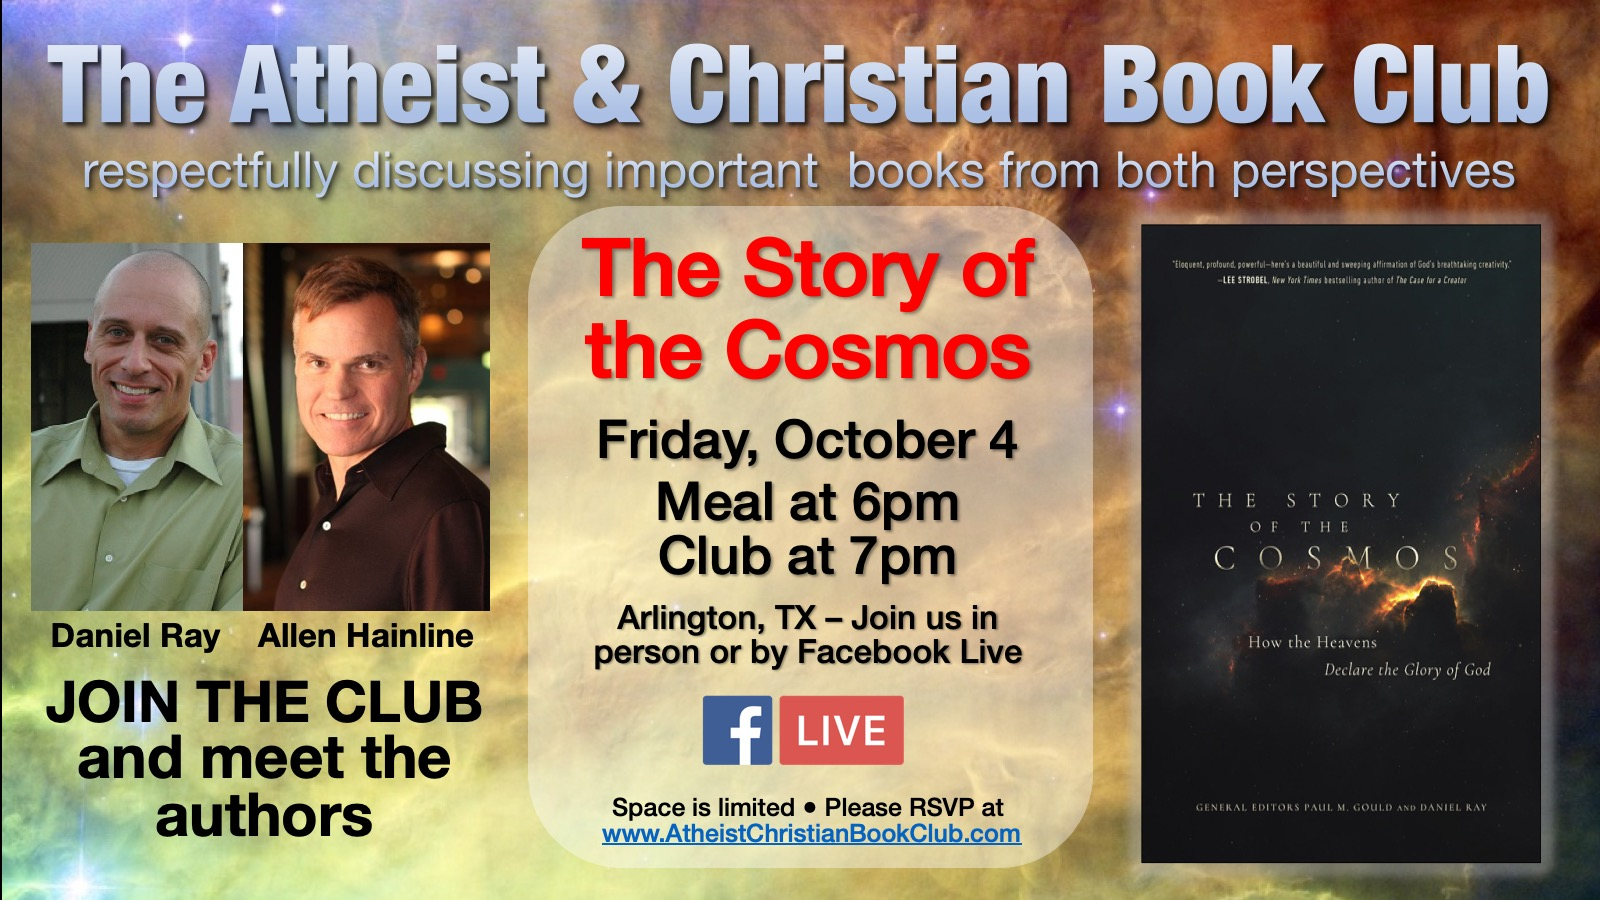 Atheist & Christian Book Club 9/6/2019